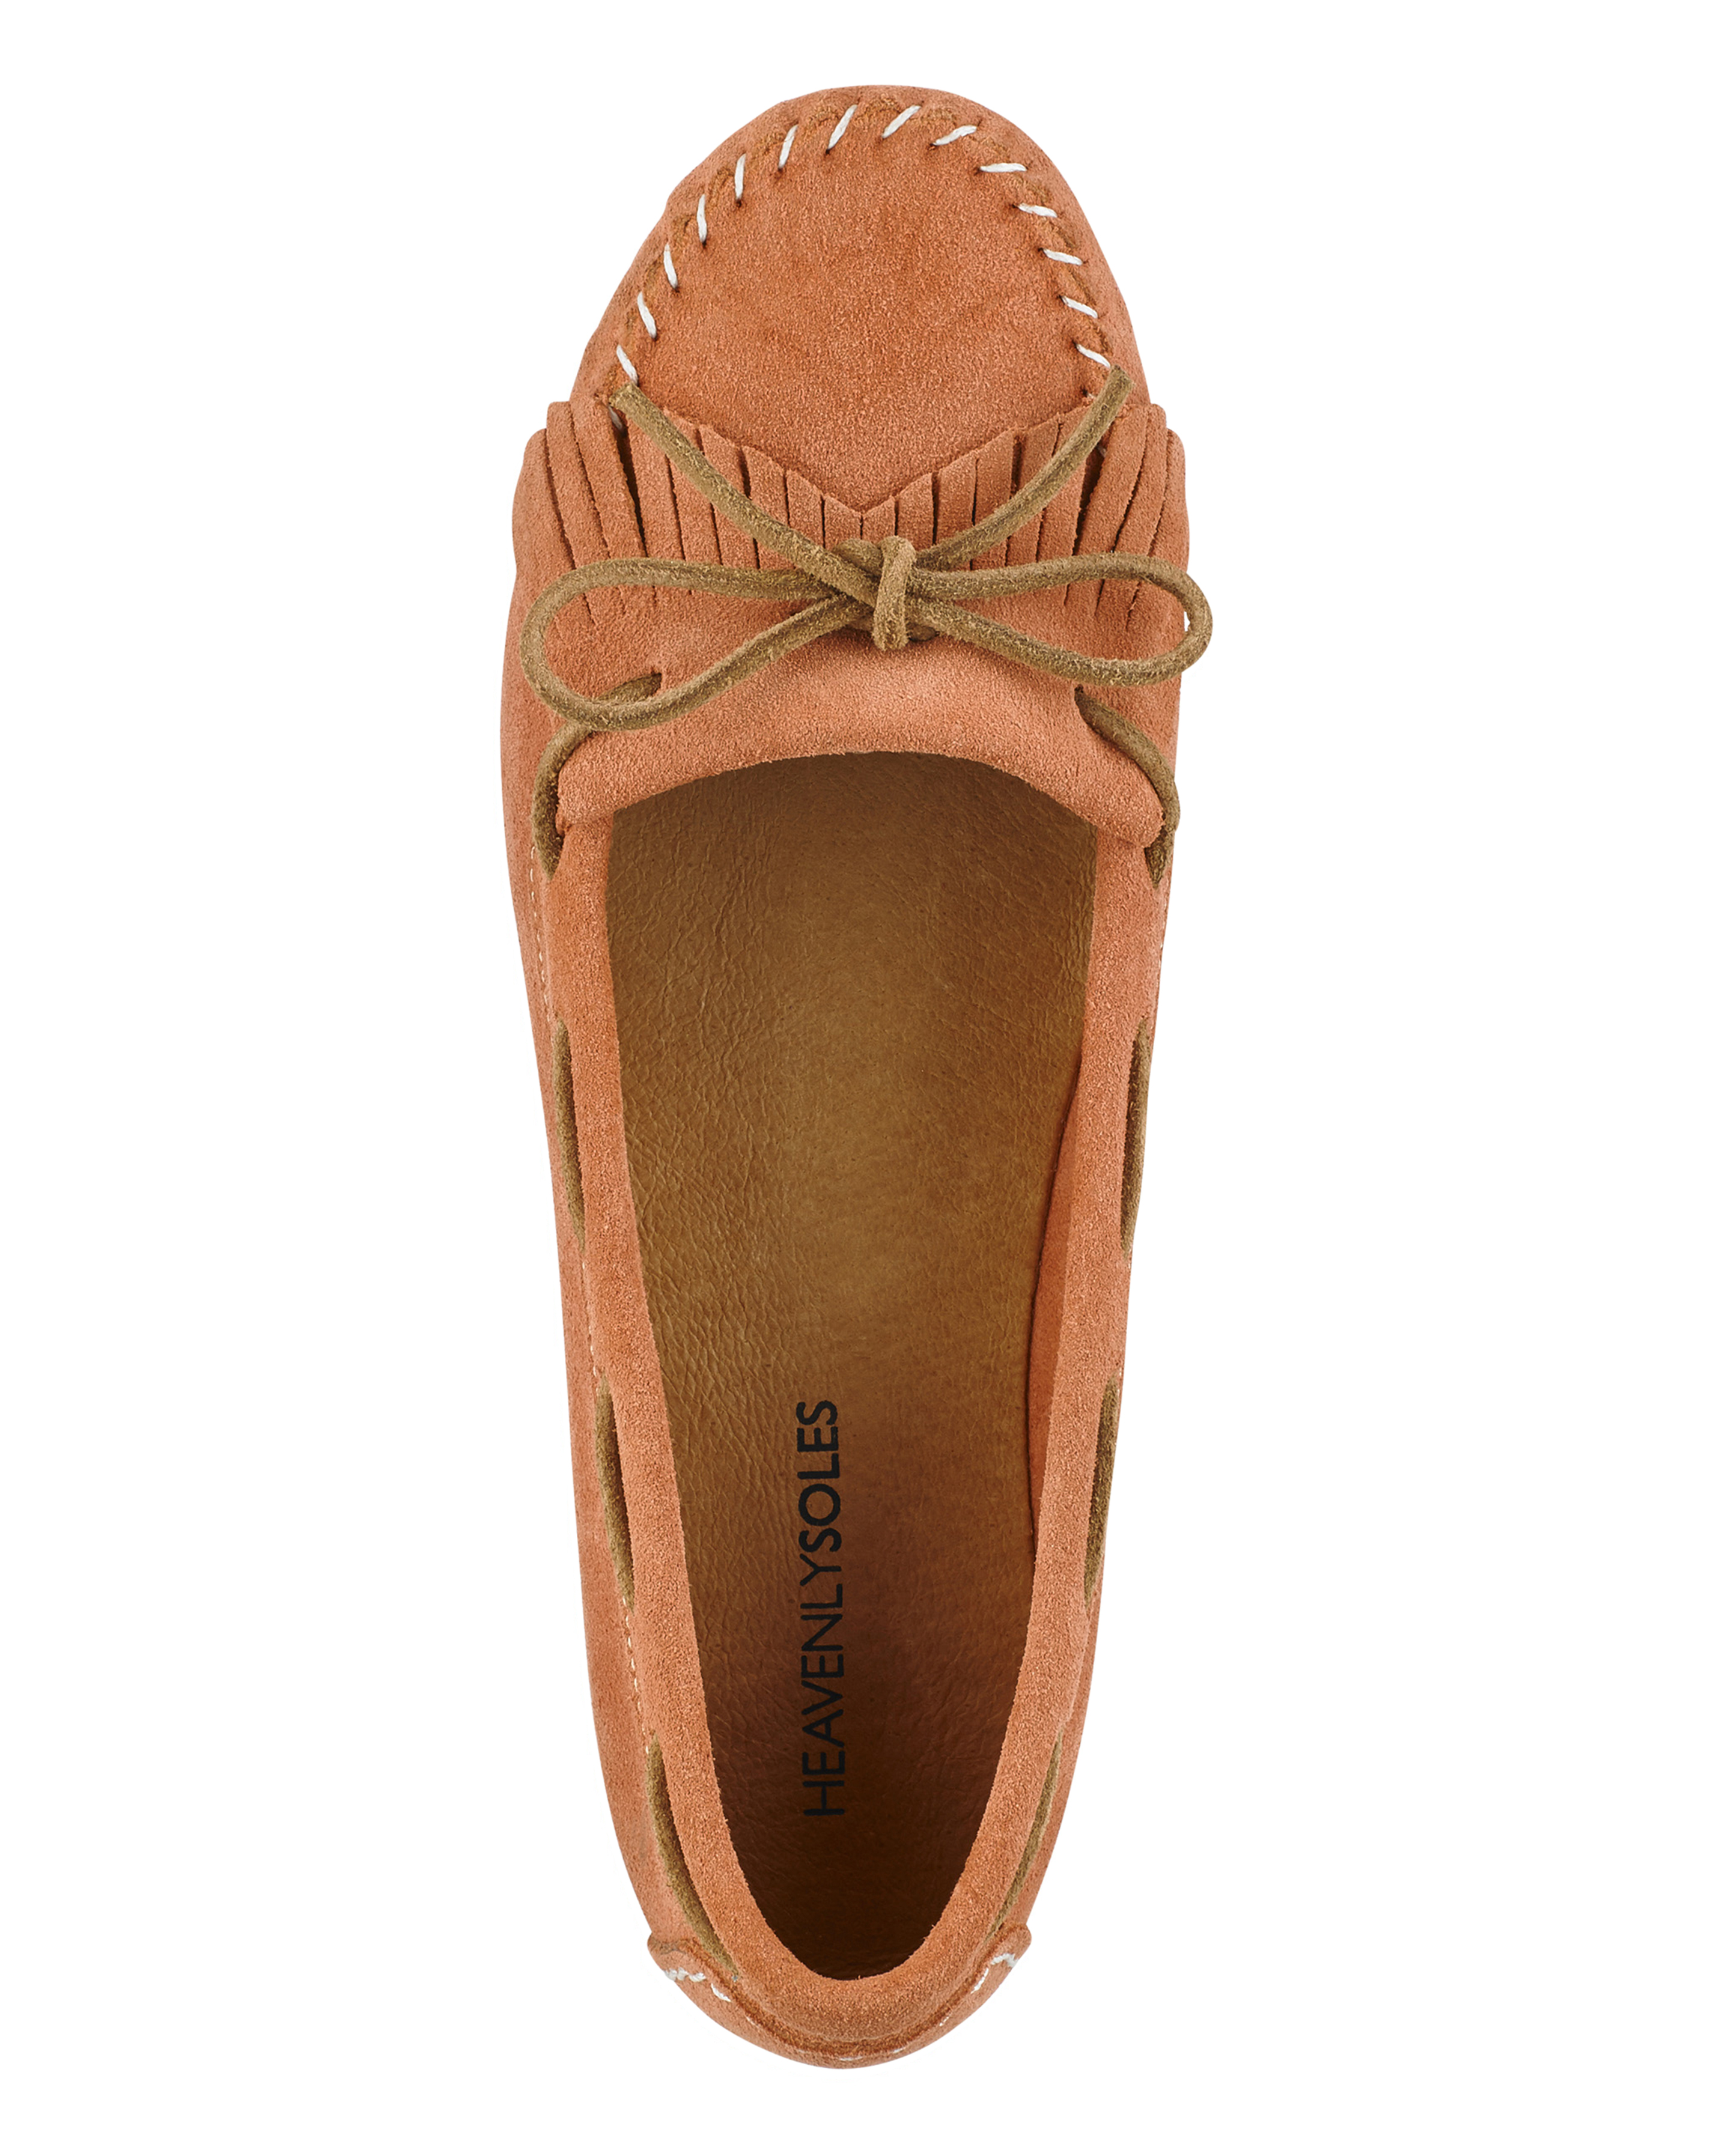 New Simply Be Womens Soles Plus Size Heavenly Soles Womens Shoes 51daa9